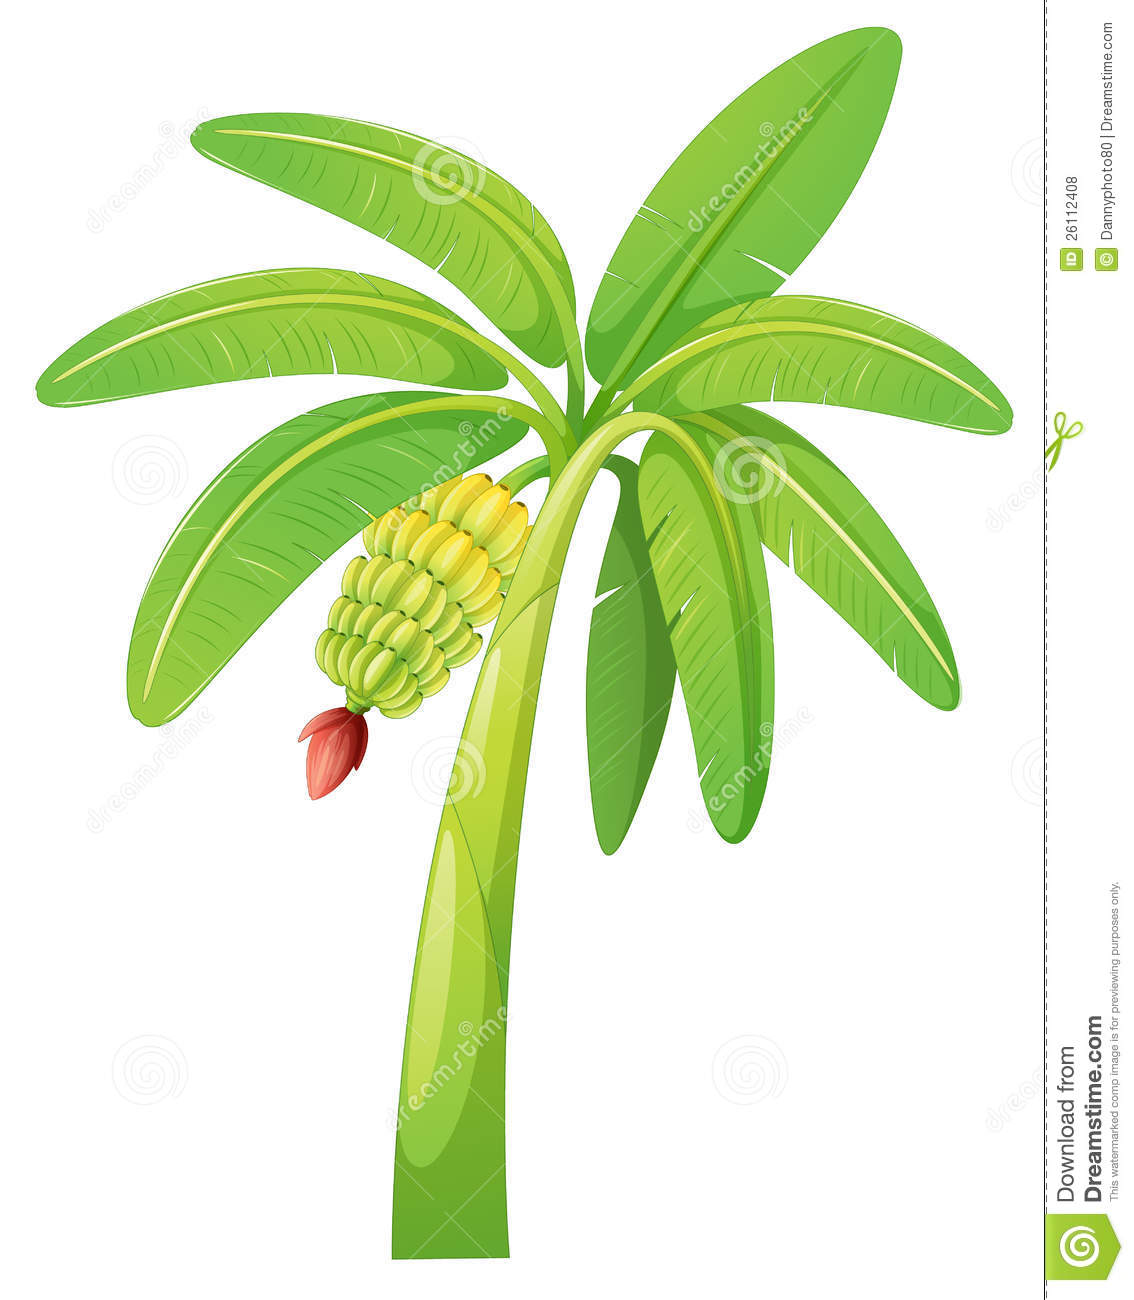 Excellent Banana Tree Coloring Images - Entry Level Resume Templates ...